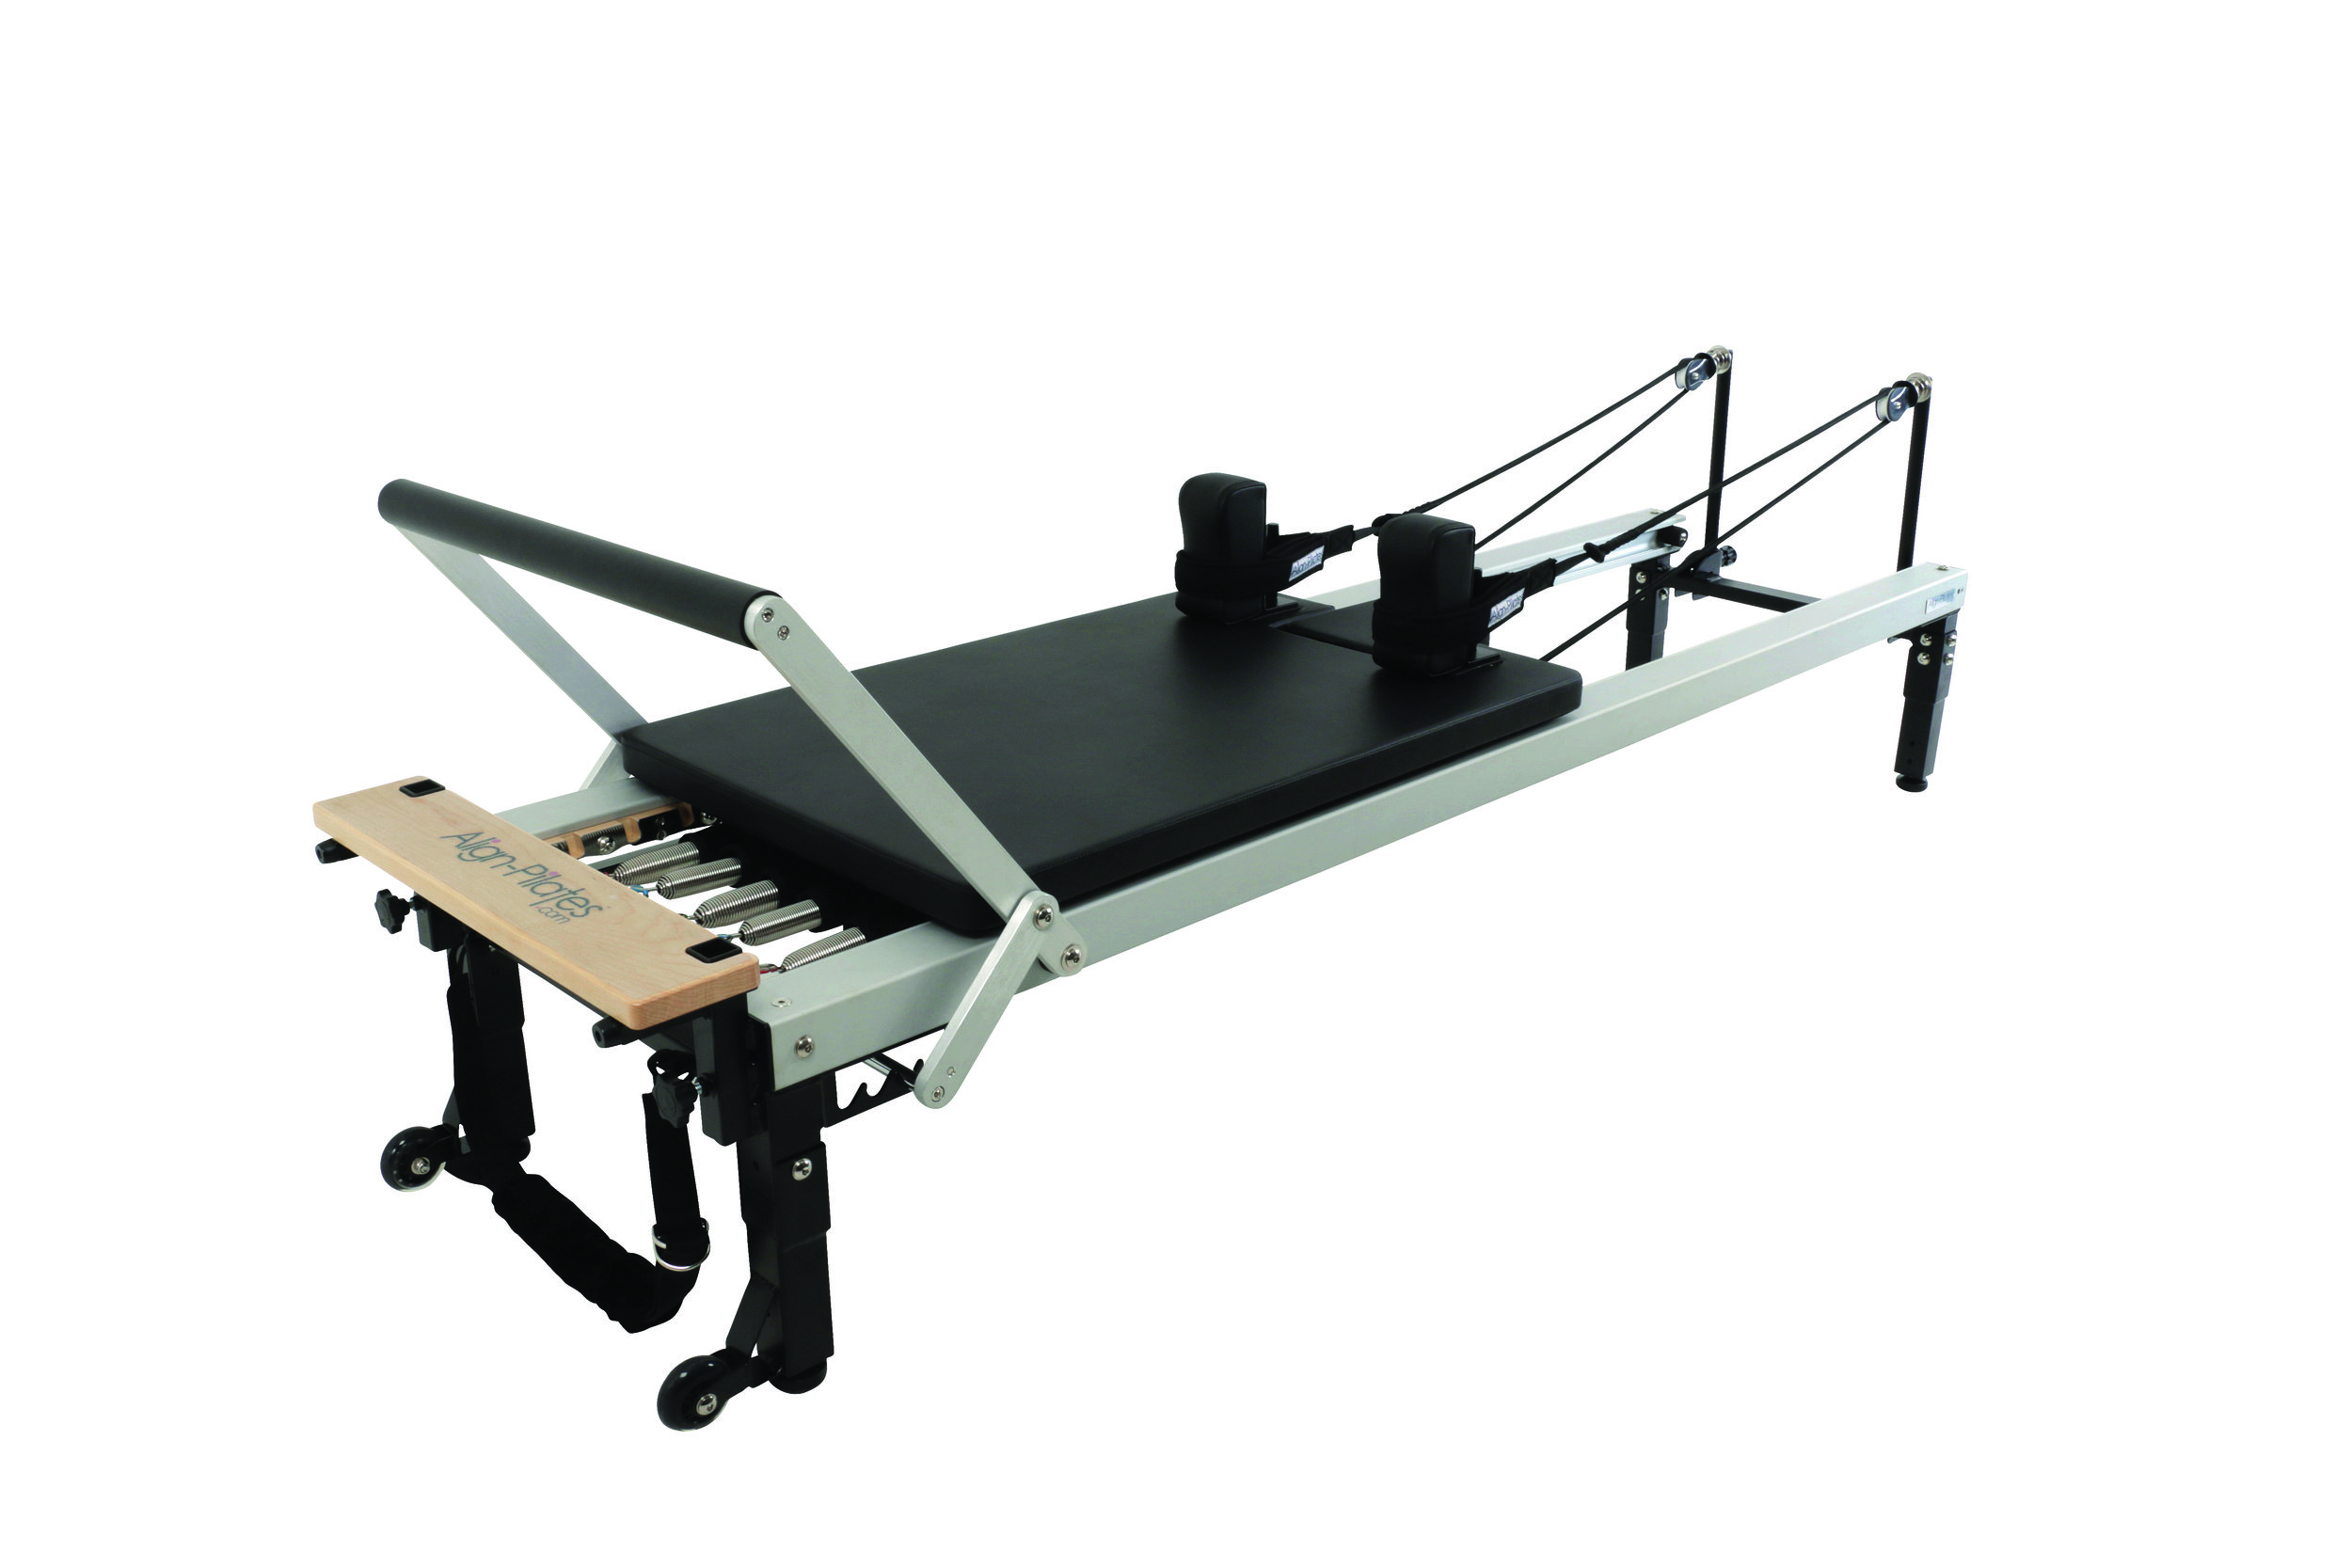 Align C2 pro pilates reformer with extension legs